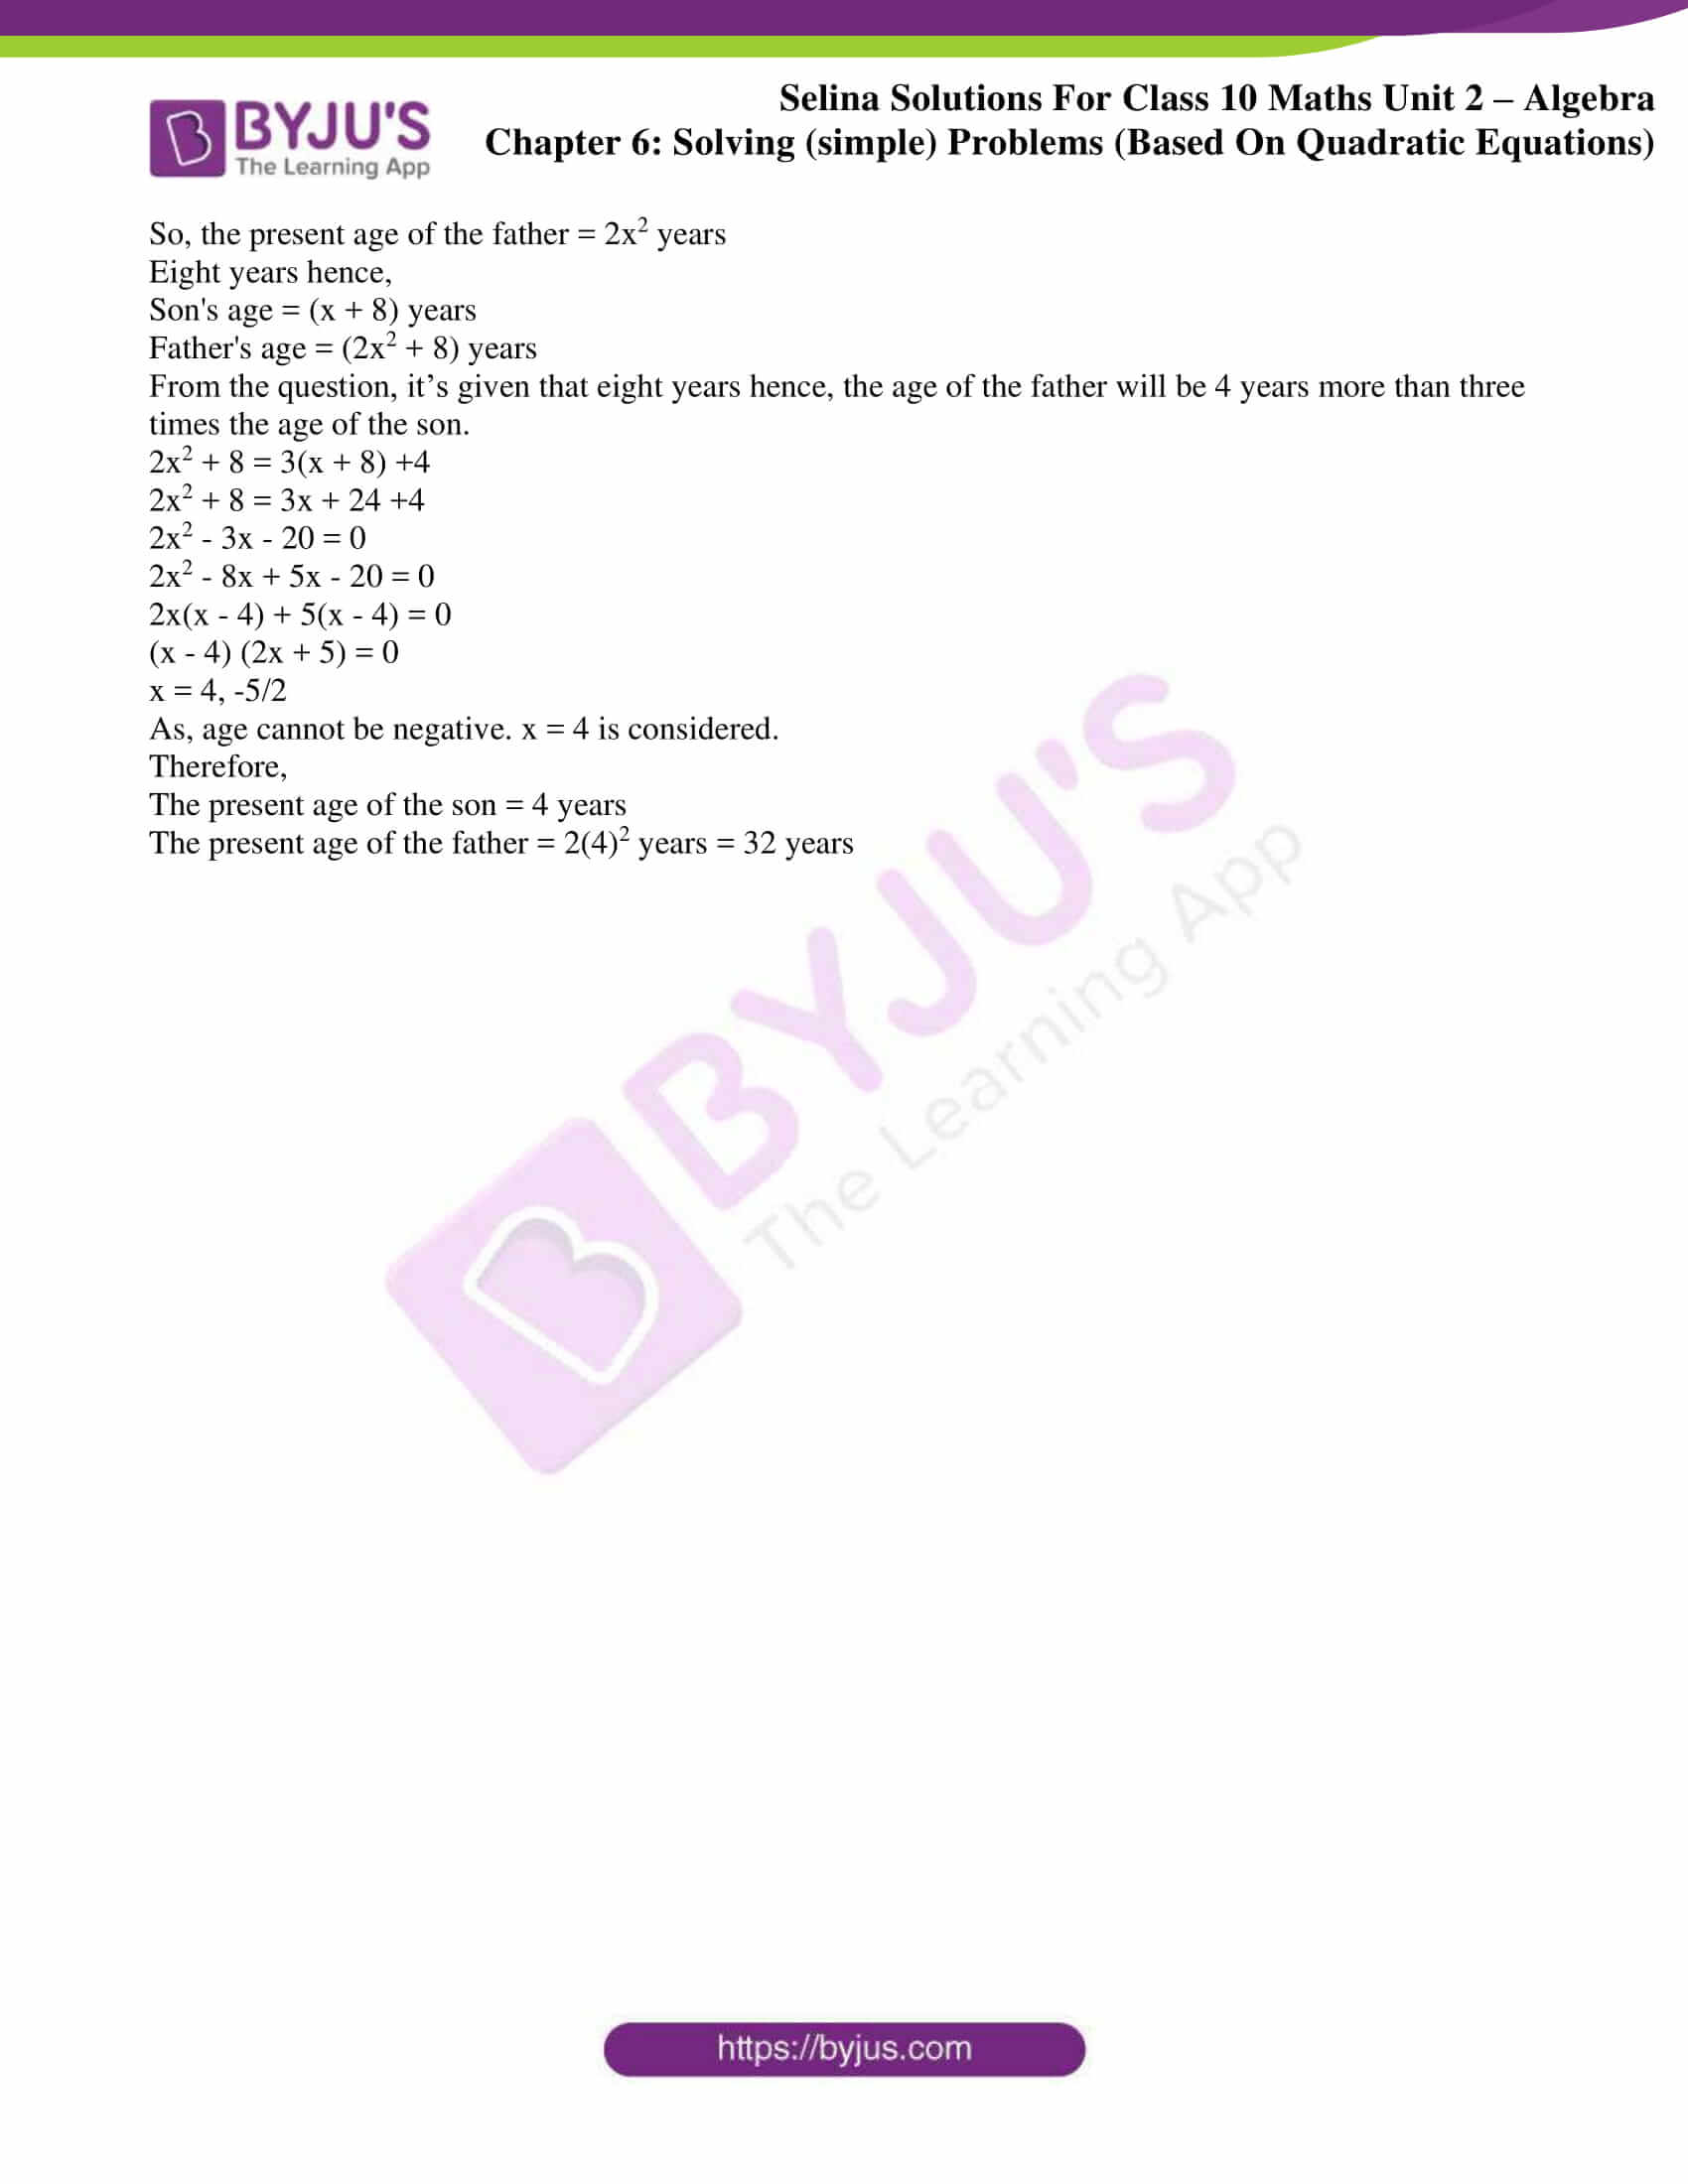 selina solution concise maths class 10 chapter 6